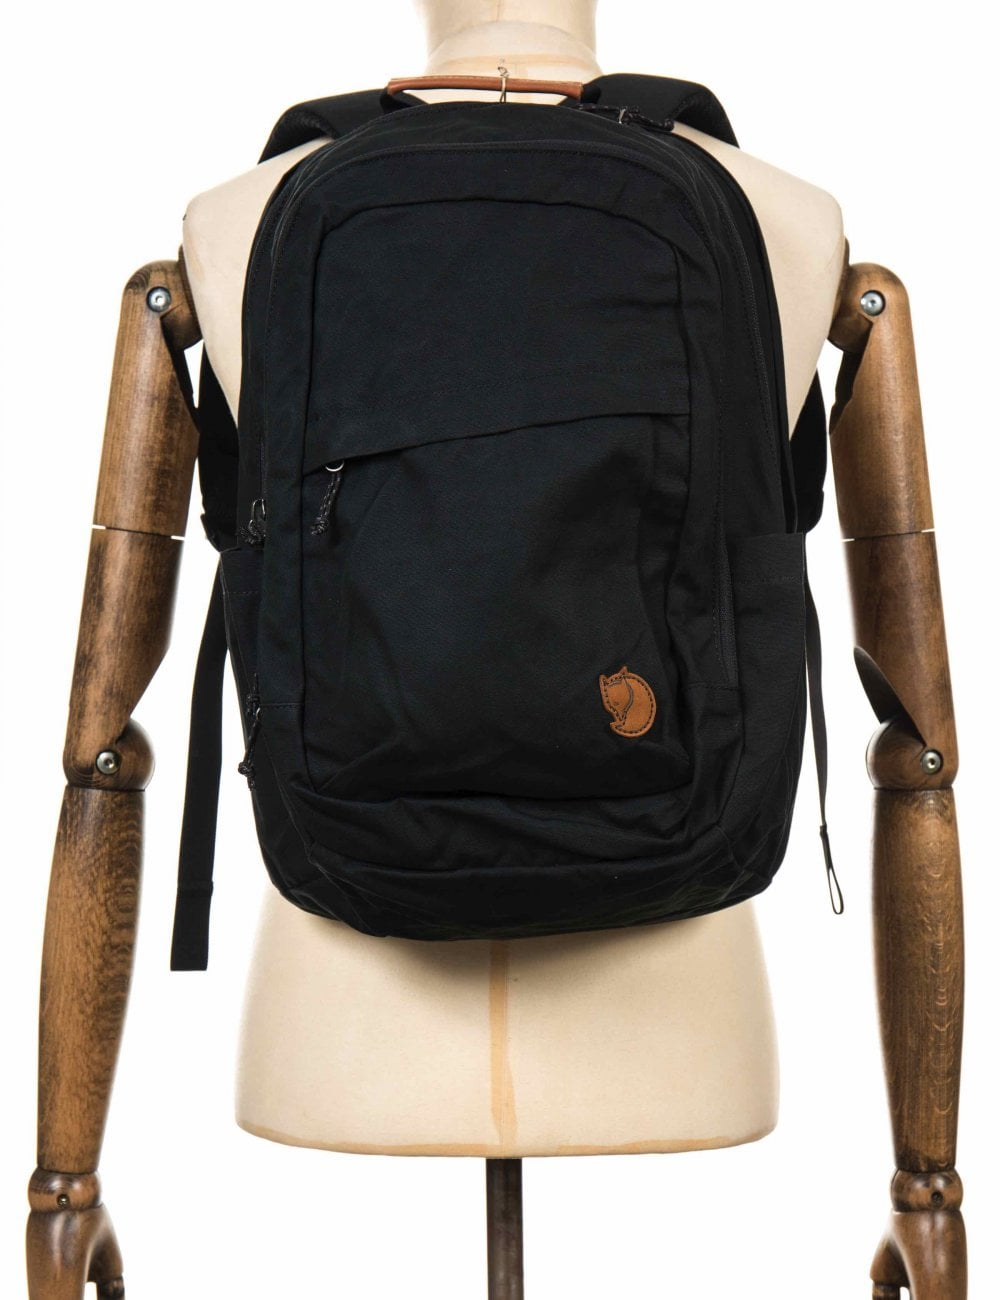 78eed4b5249e Fjallraven Raven 28L Backpack - Black - Accessories from Fat Buddha ...